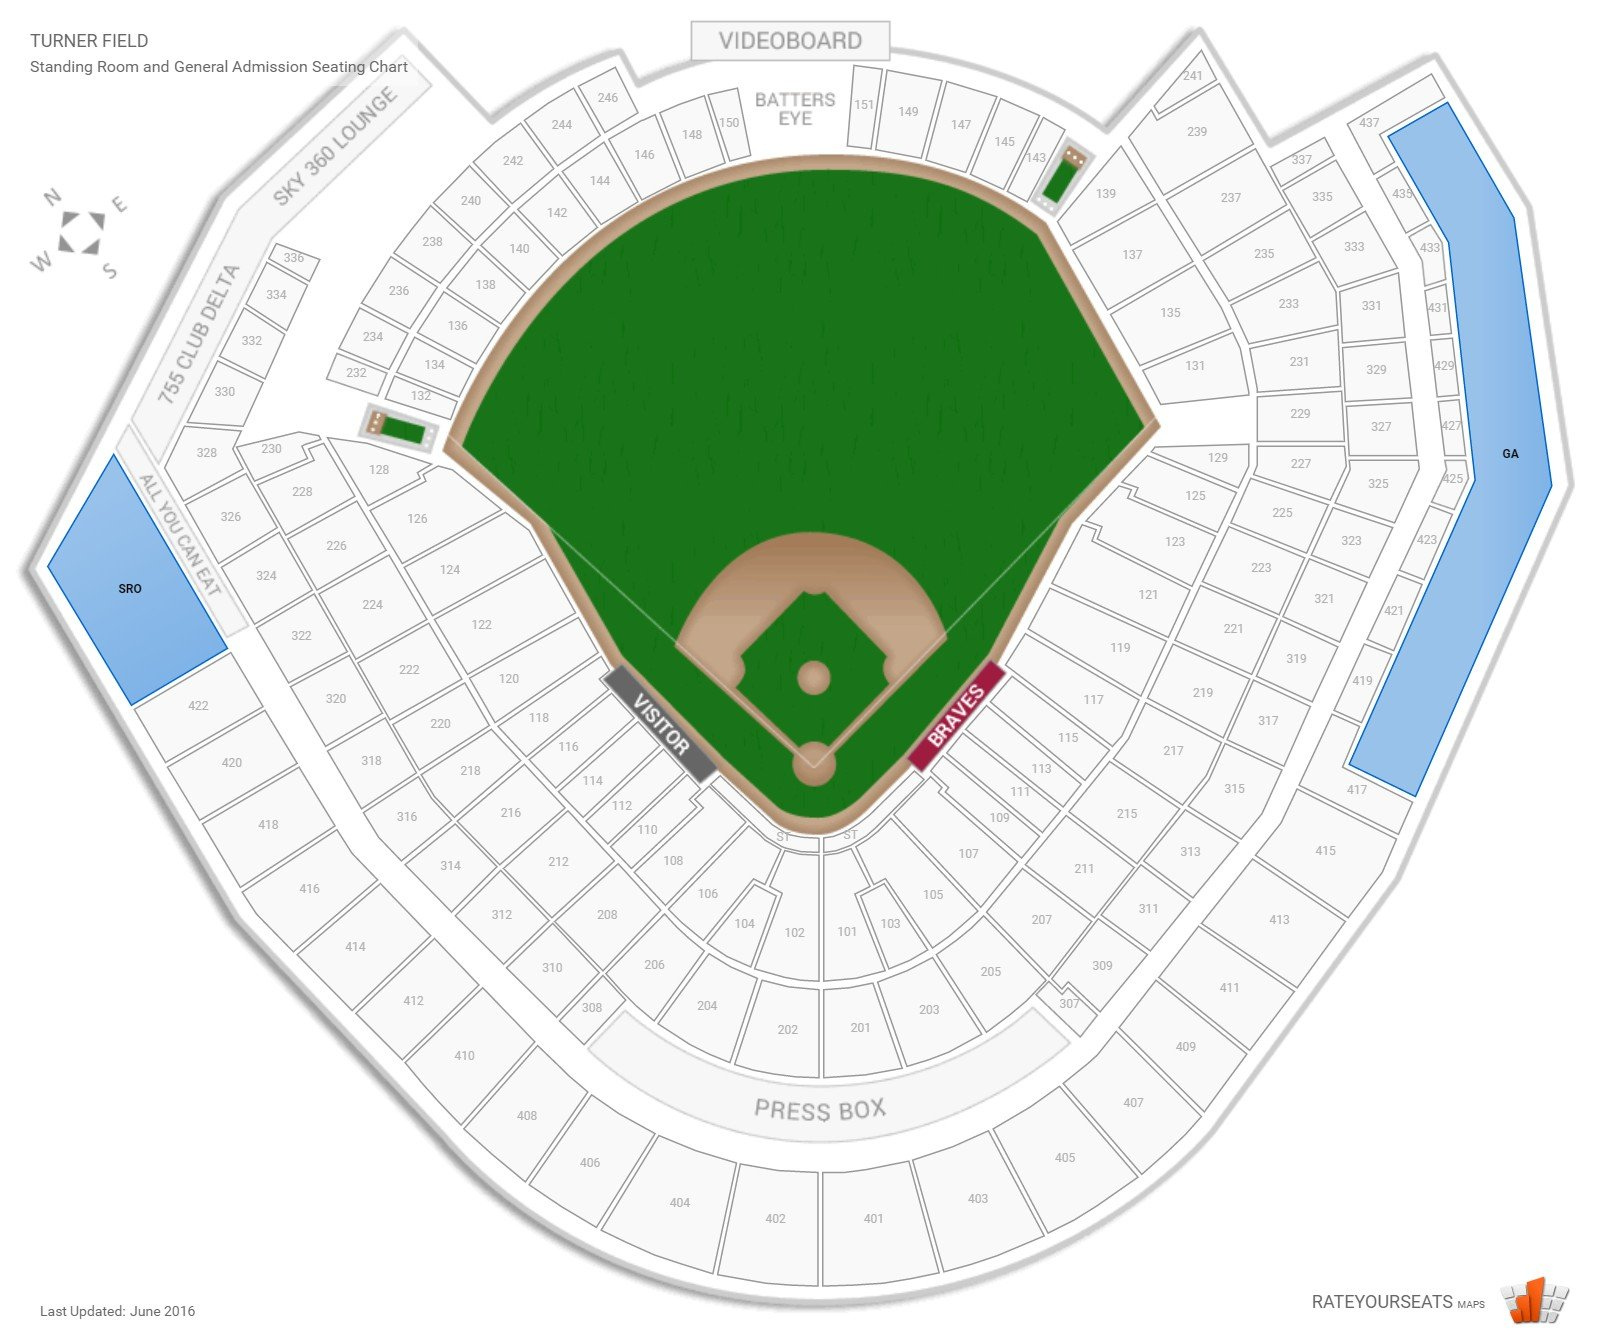 Turner Field Standing Room and General Admission seating chart